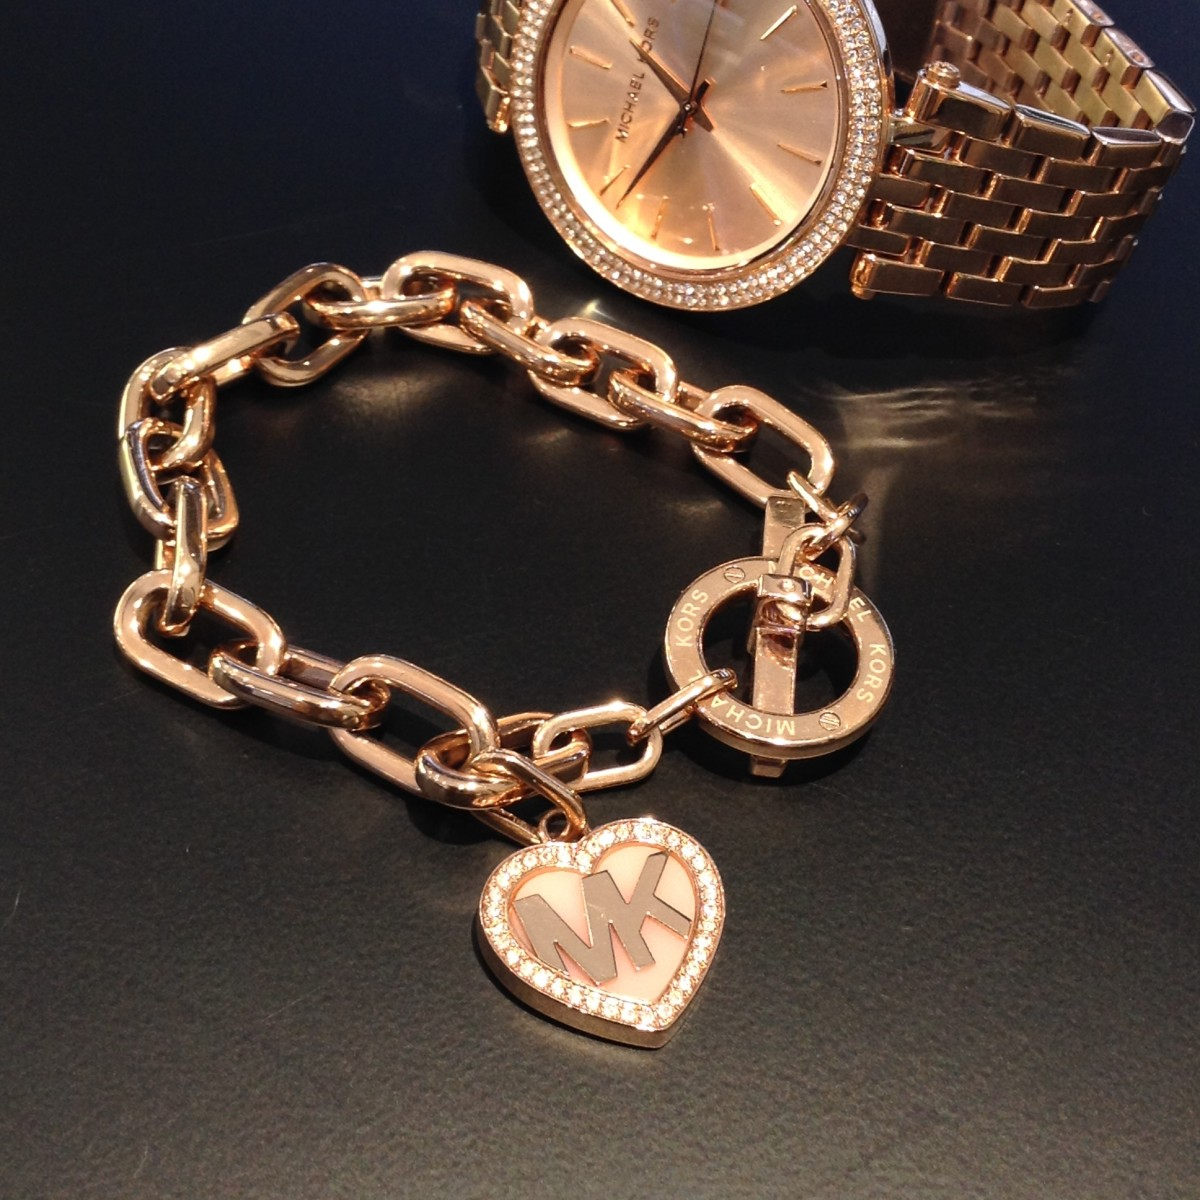 michael kors rose gold bracelet crown jewellery. Black Bedroom Furniture Sets. Home Design Ideas